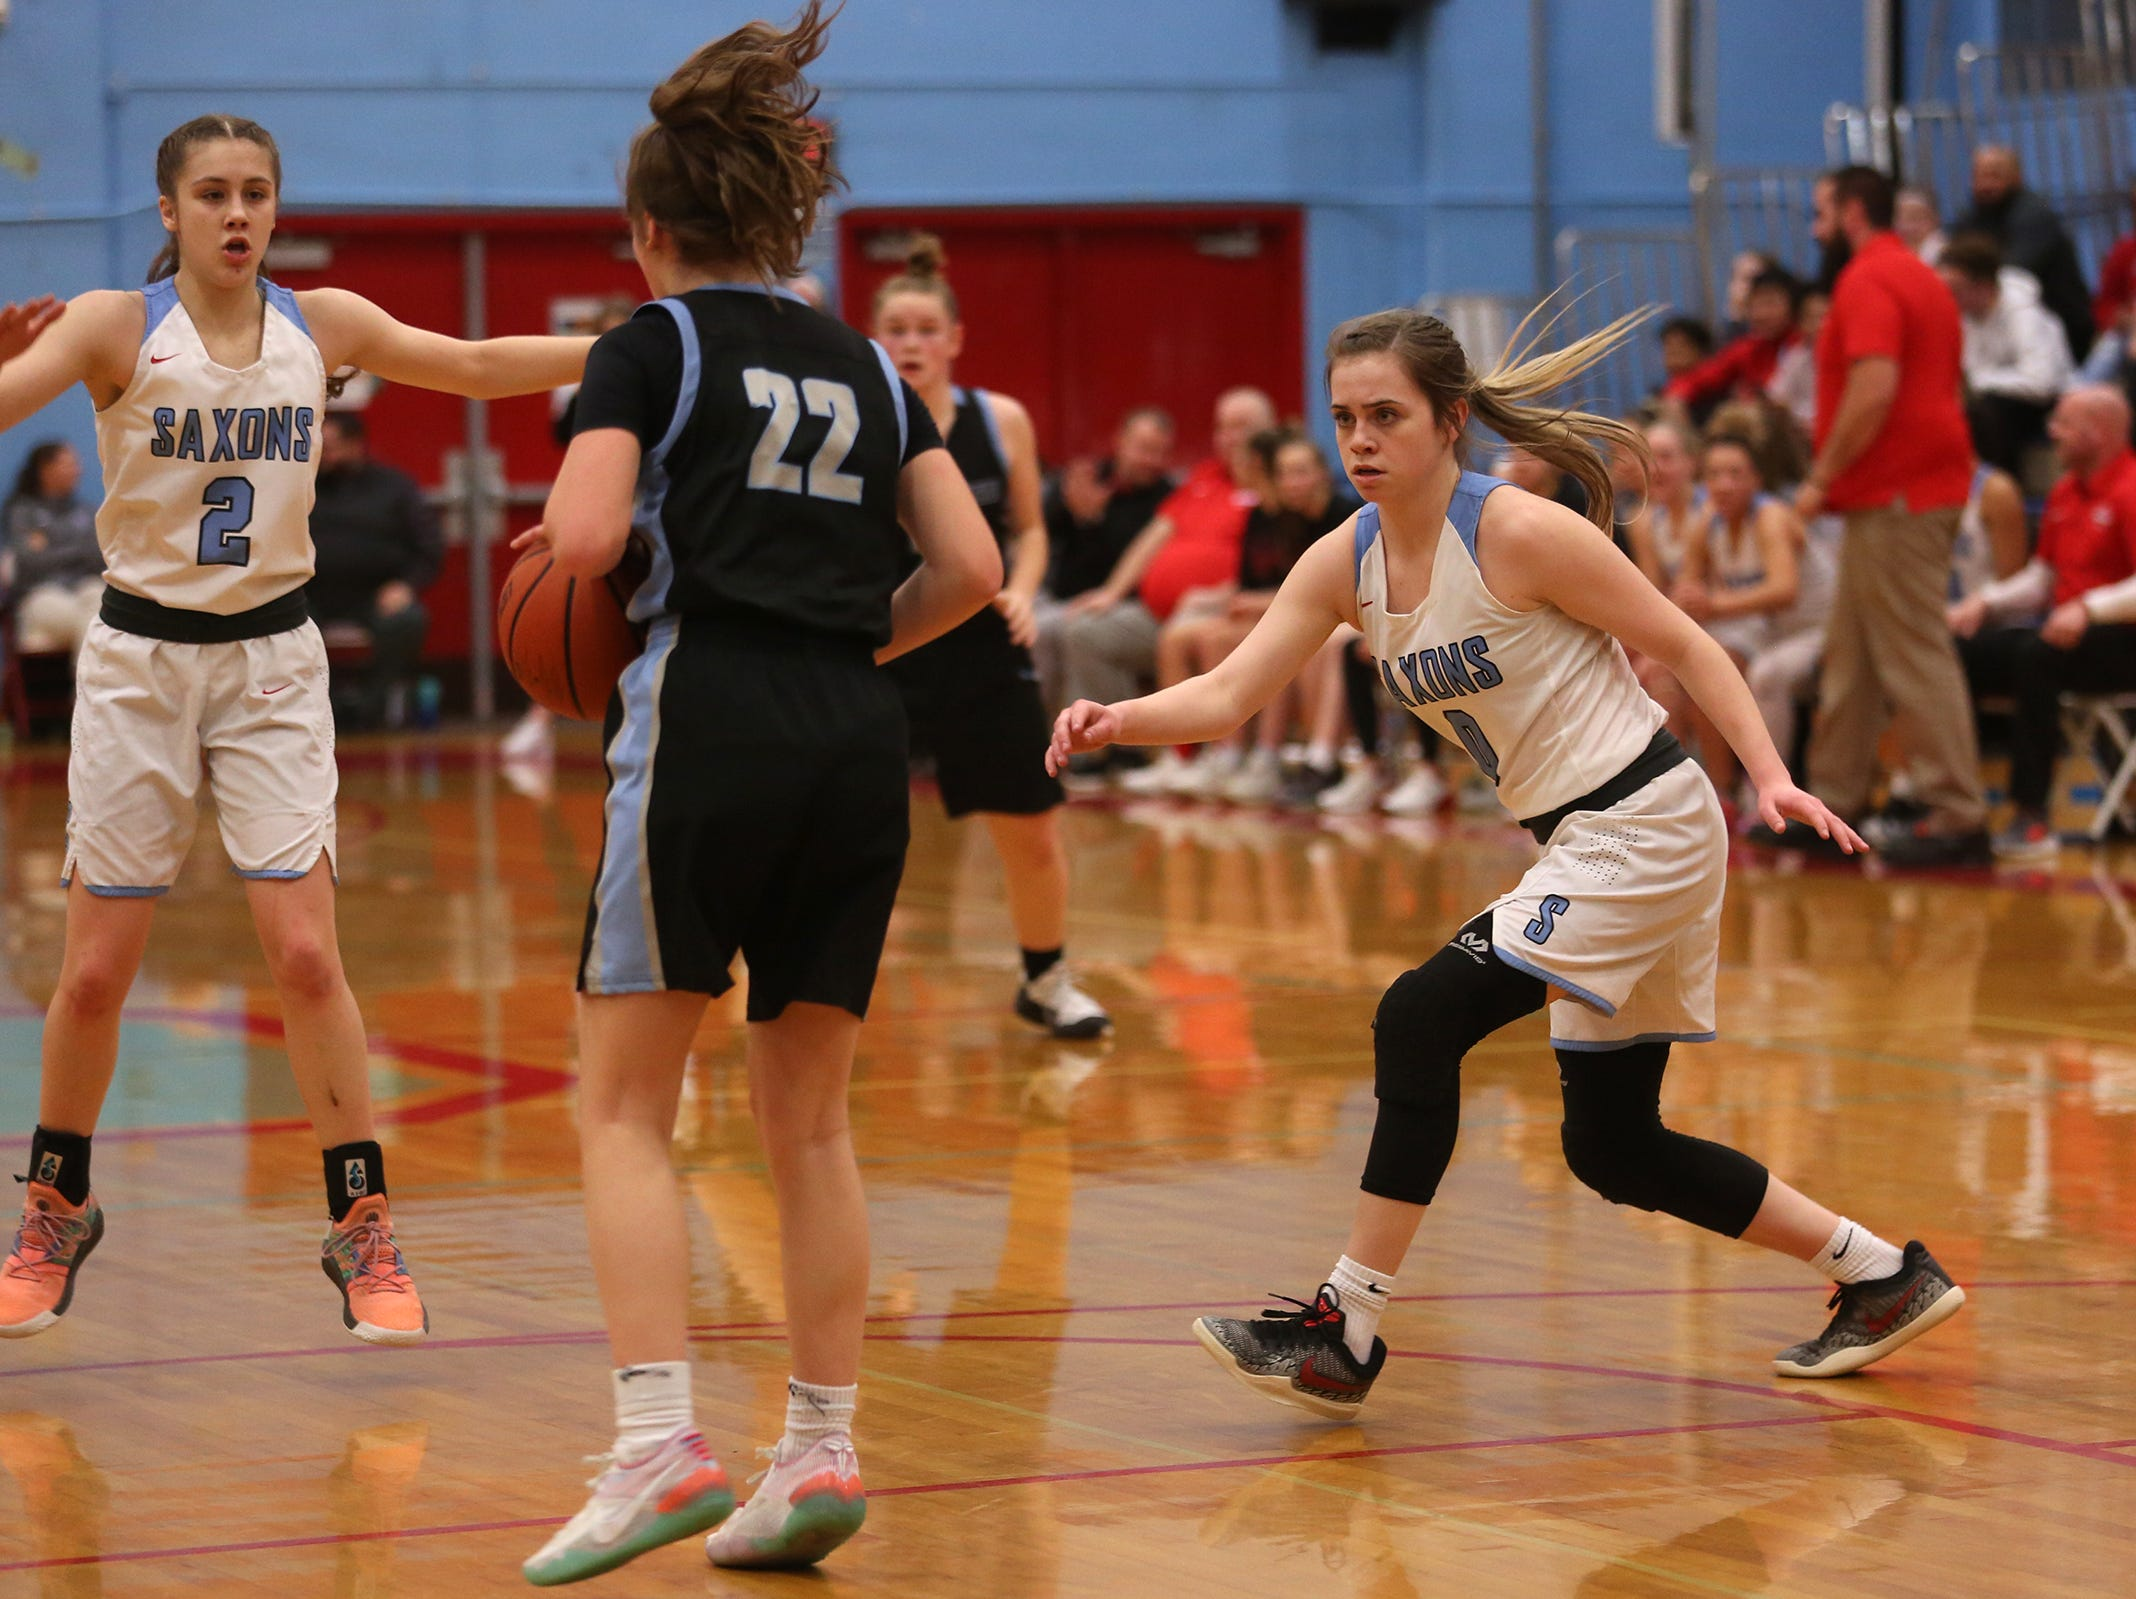 South Salem's Hilary James (2) and Ellyson Haytas (2) play defense against Mountainside's Halle Hageman (22) during the South Salem vs. Mountainside girls basketball OSAA playoff game in Salem on Thursday, Feb. 28, 2019.